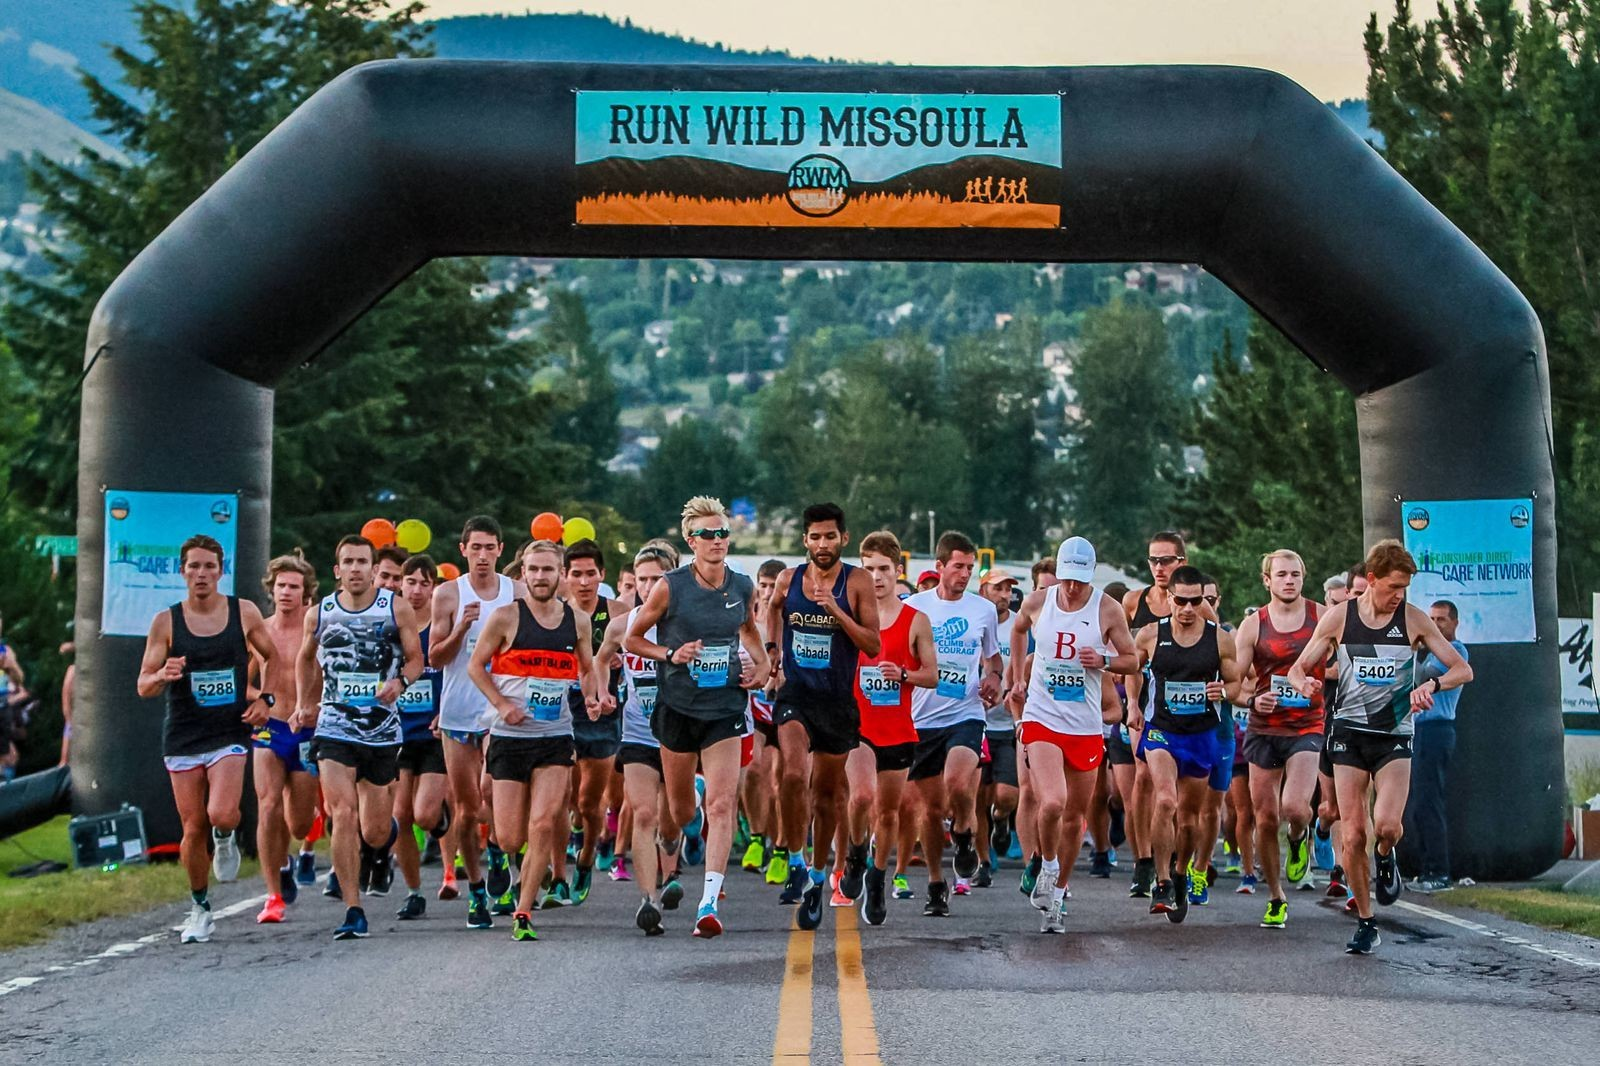 The Missoula Marathon will bring an estimated $2 million to the Garden City economy